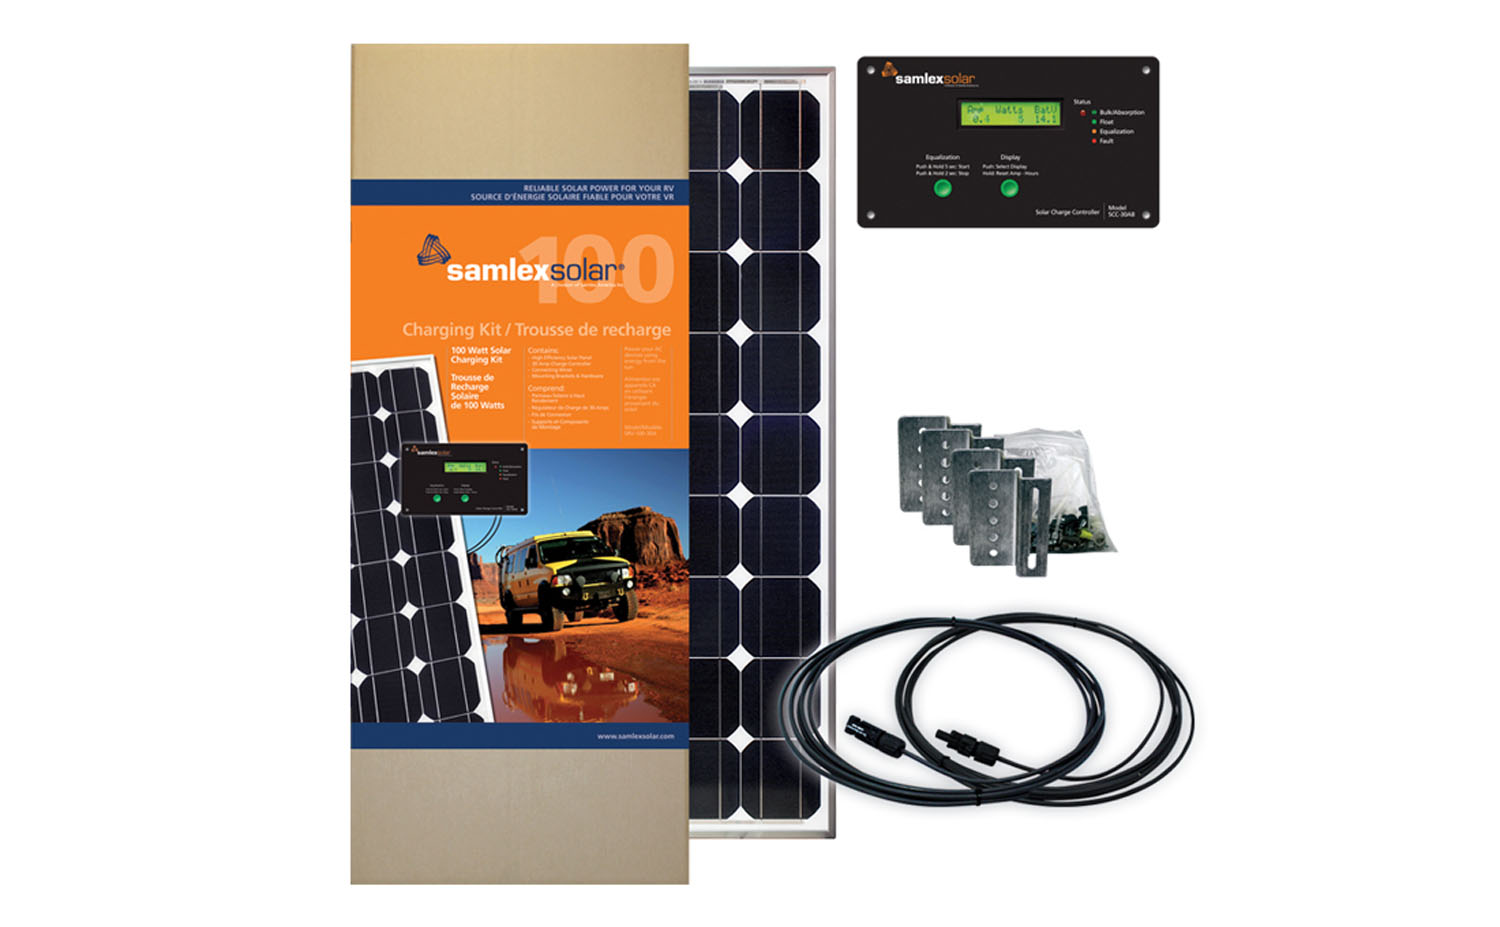 SRV10030A - Samlex 100 Watt Solar Charging Kit